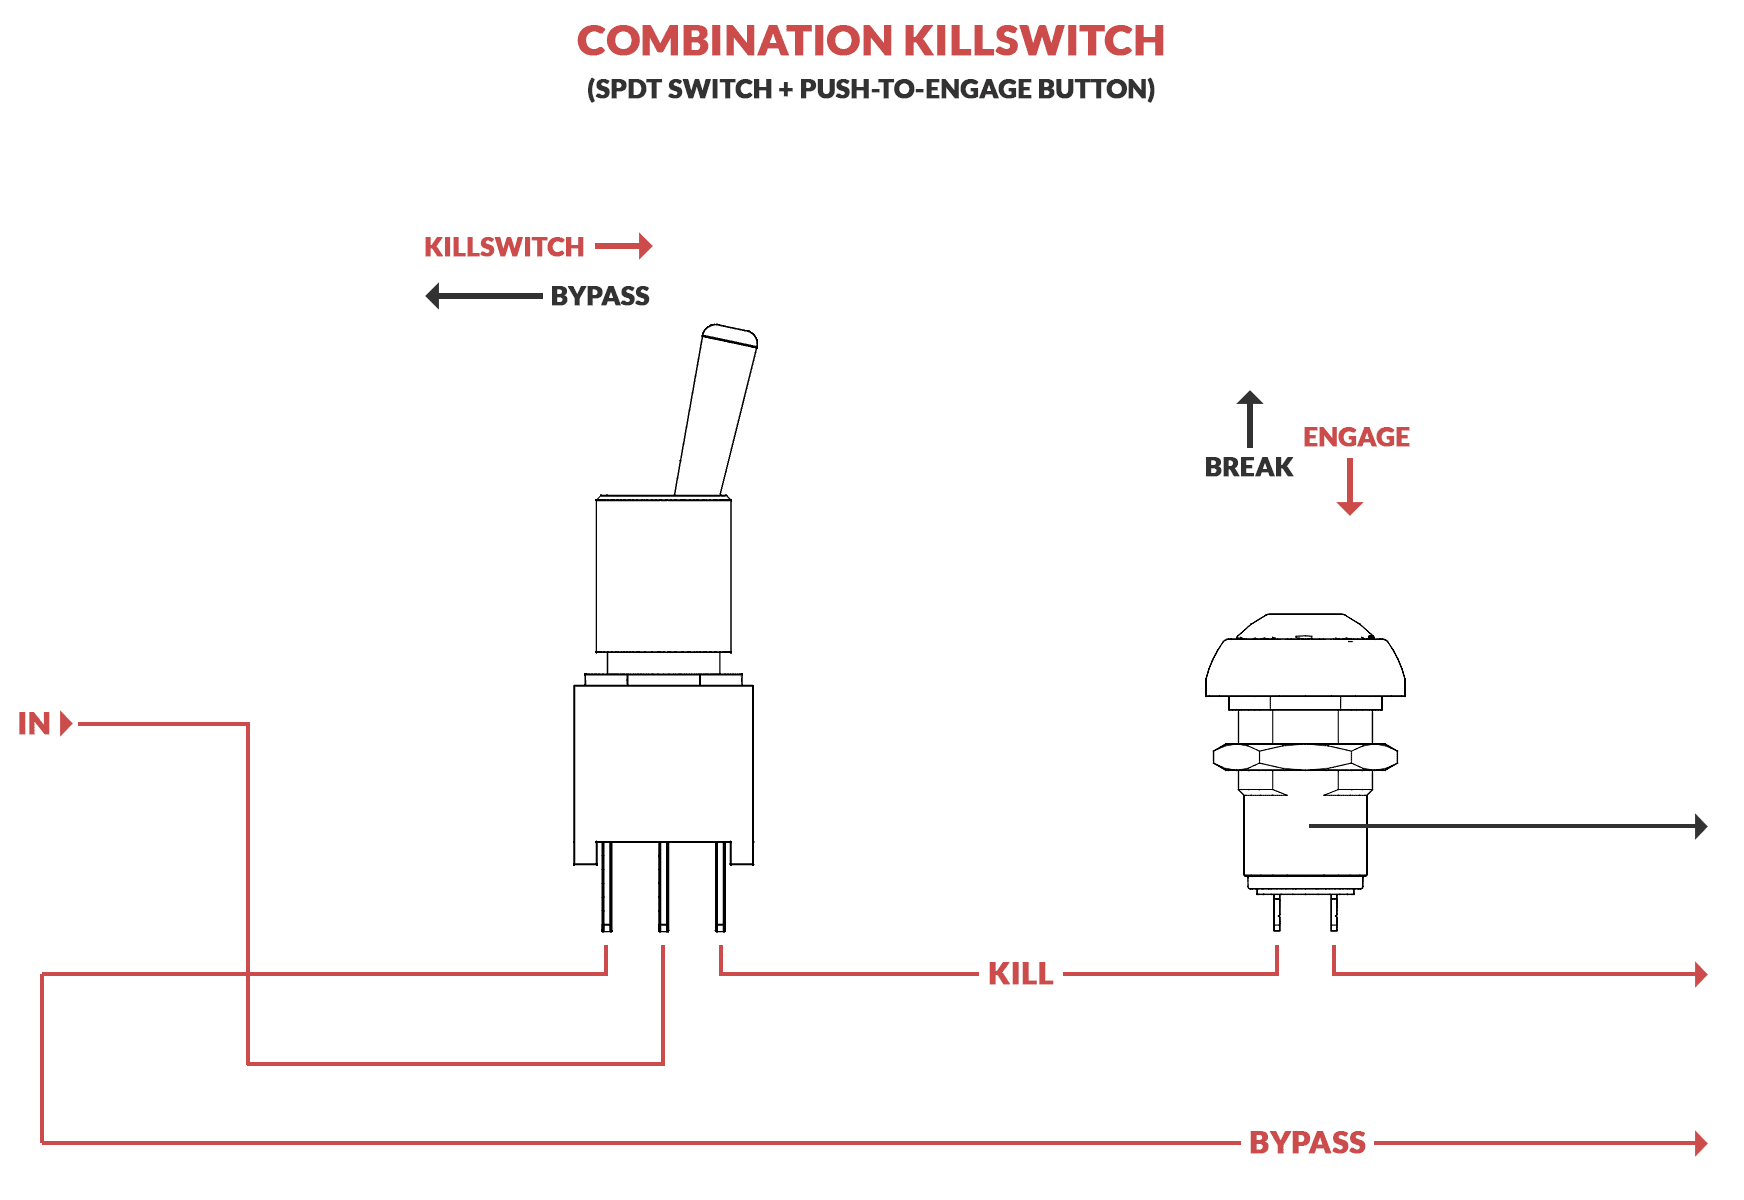 How to build a killswitch for your guitar electric herald a killswitch circuit modification for electric guitars that combines an spdt switch and an no momentary cheapraybanclubmaster Images